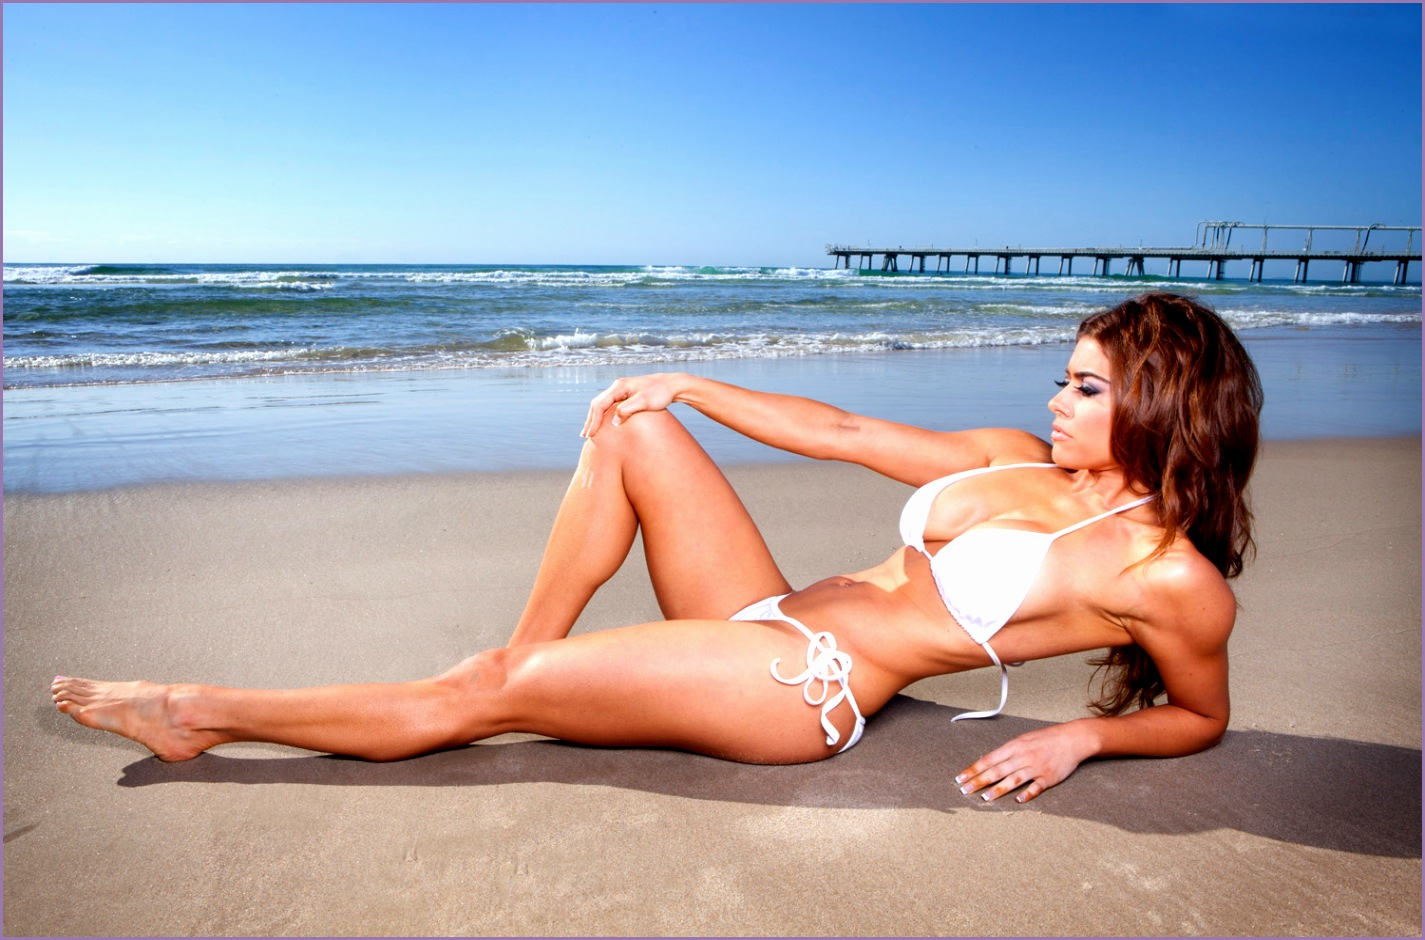 Female Fitness Beach graphy